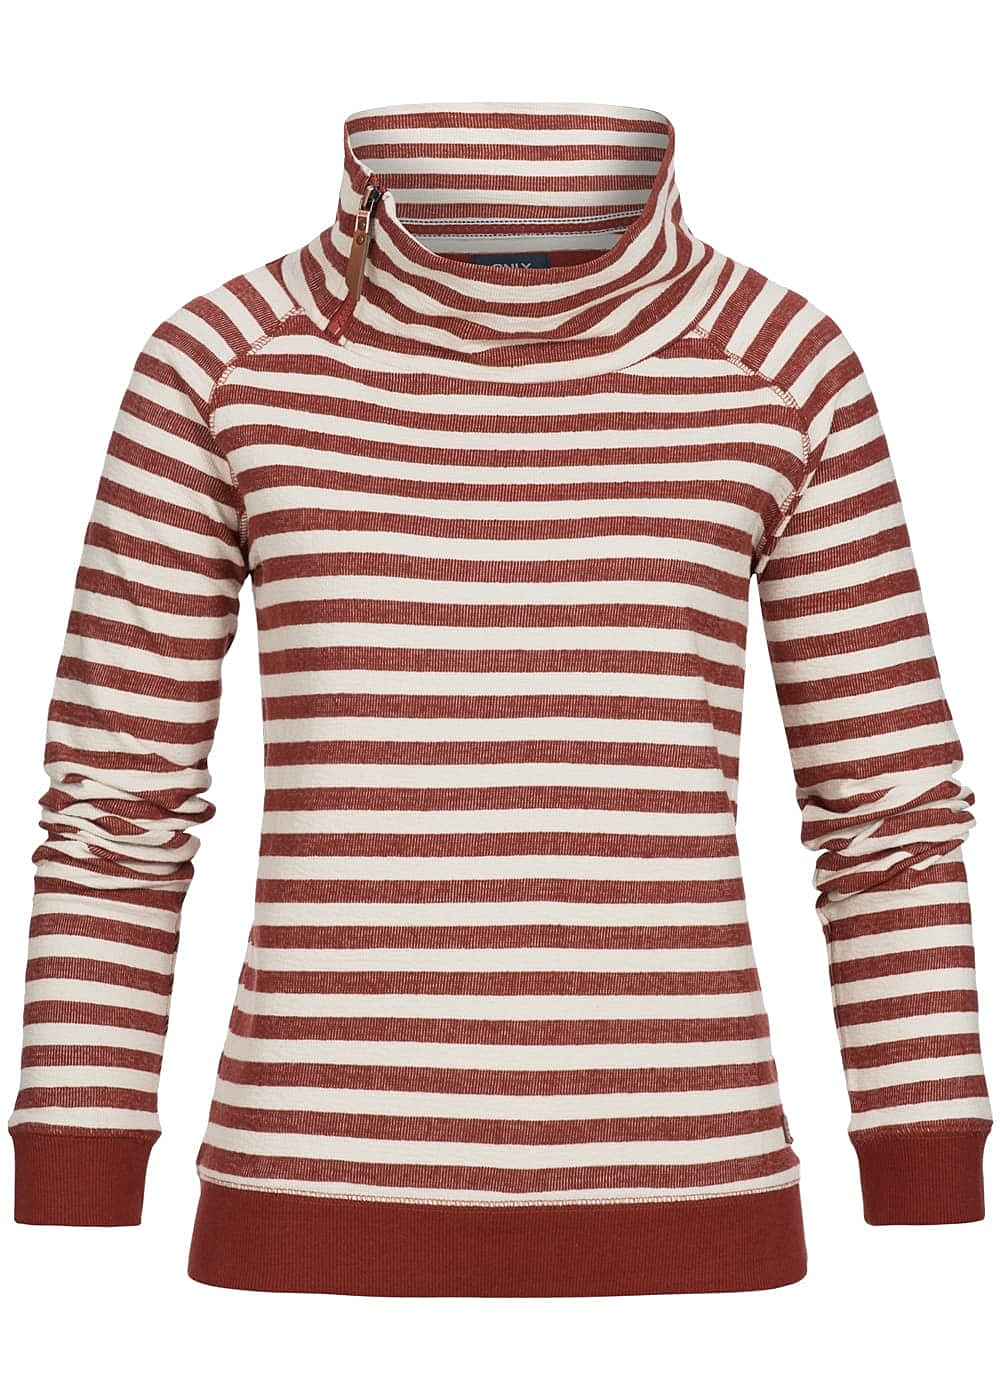 ONLY Damen Sweater gestreift Zipper am Stehkragen rot cloud dancer weiss - Art.-Nr.: 16127529